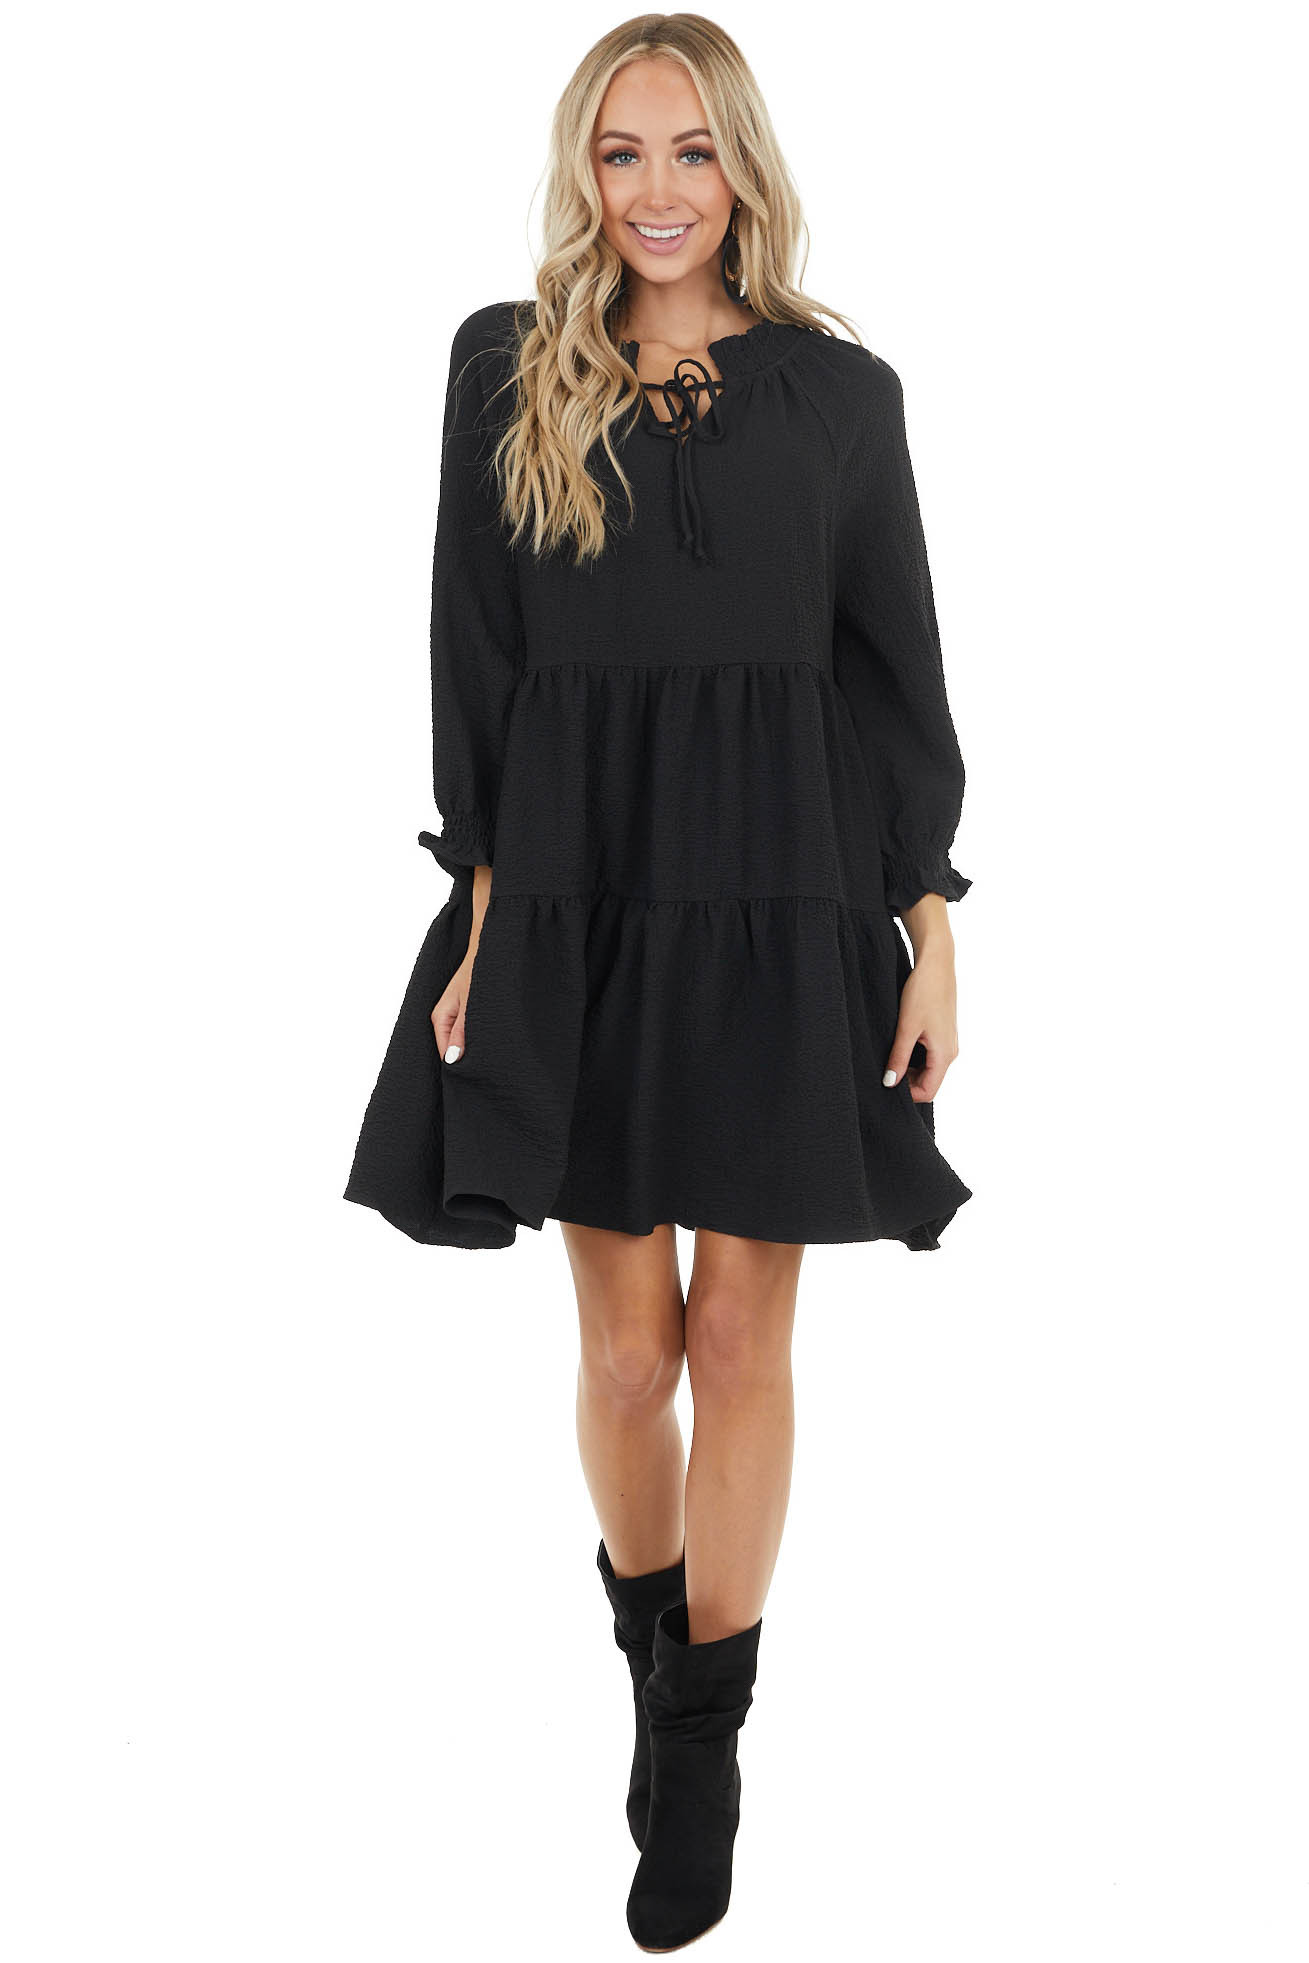 Black Textured Babydoll Mini Dress with Ruffle Details